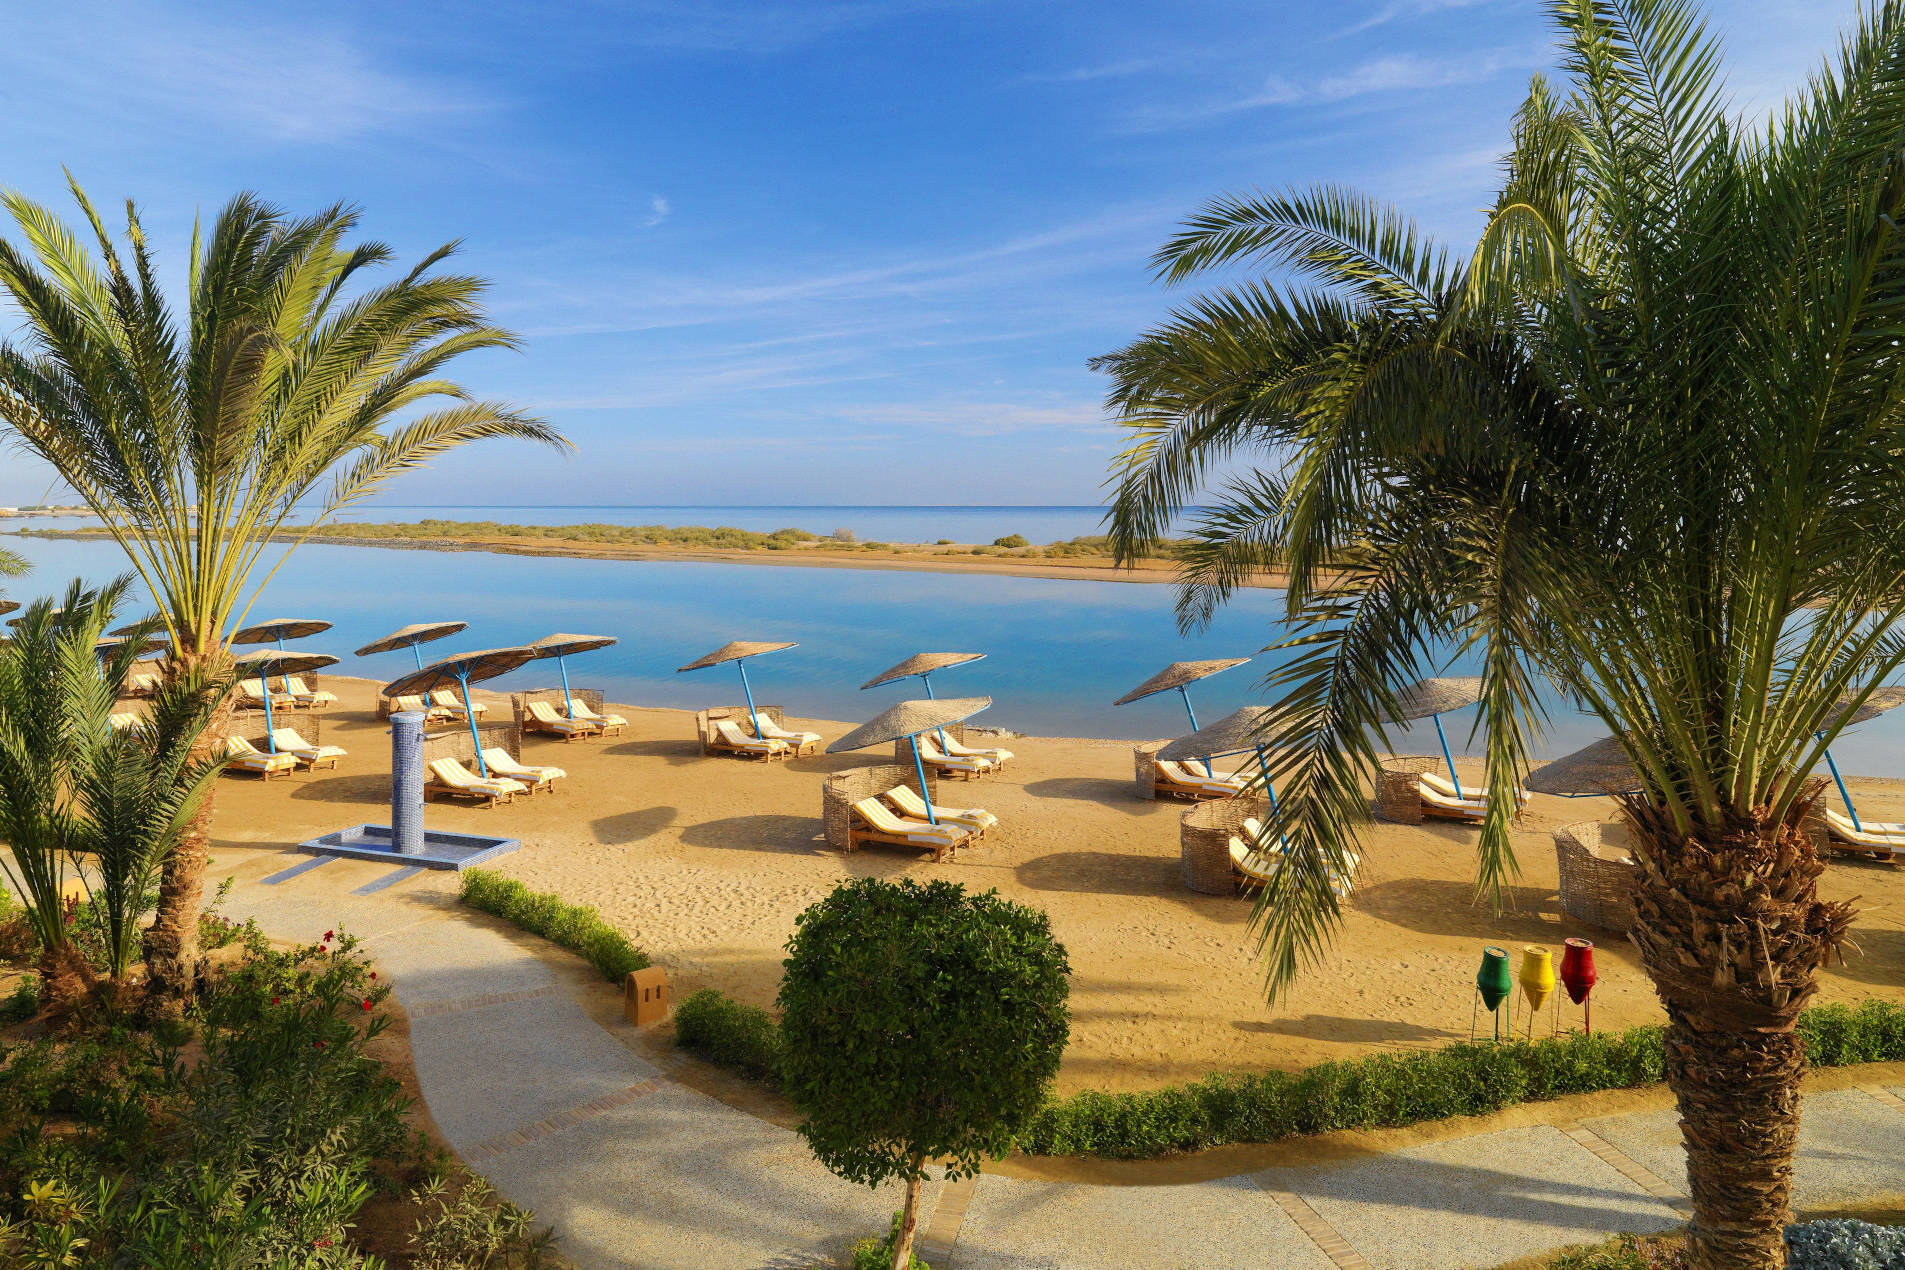 A beach view of Sheraton Miramar El Gouna with laidback sunbeds and the blue water of Red Sea